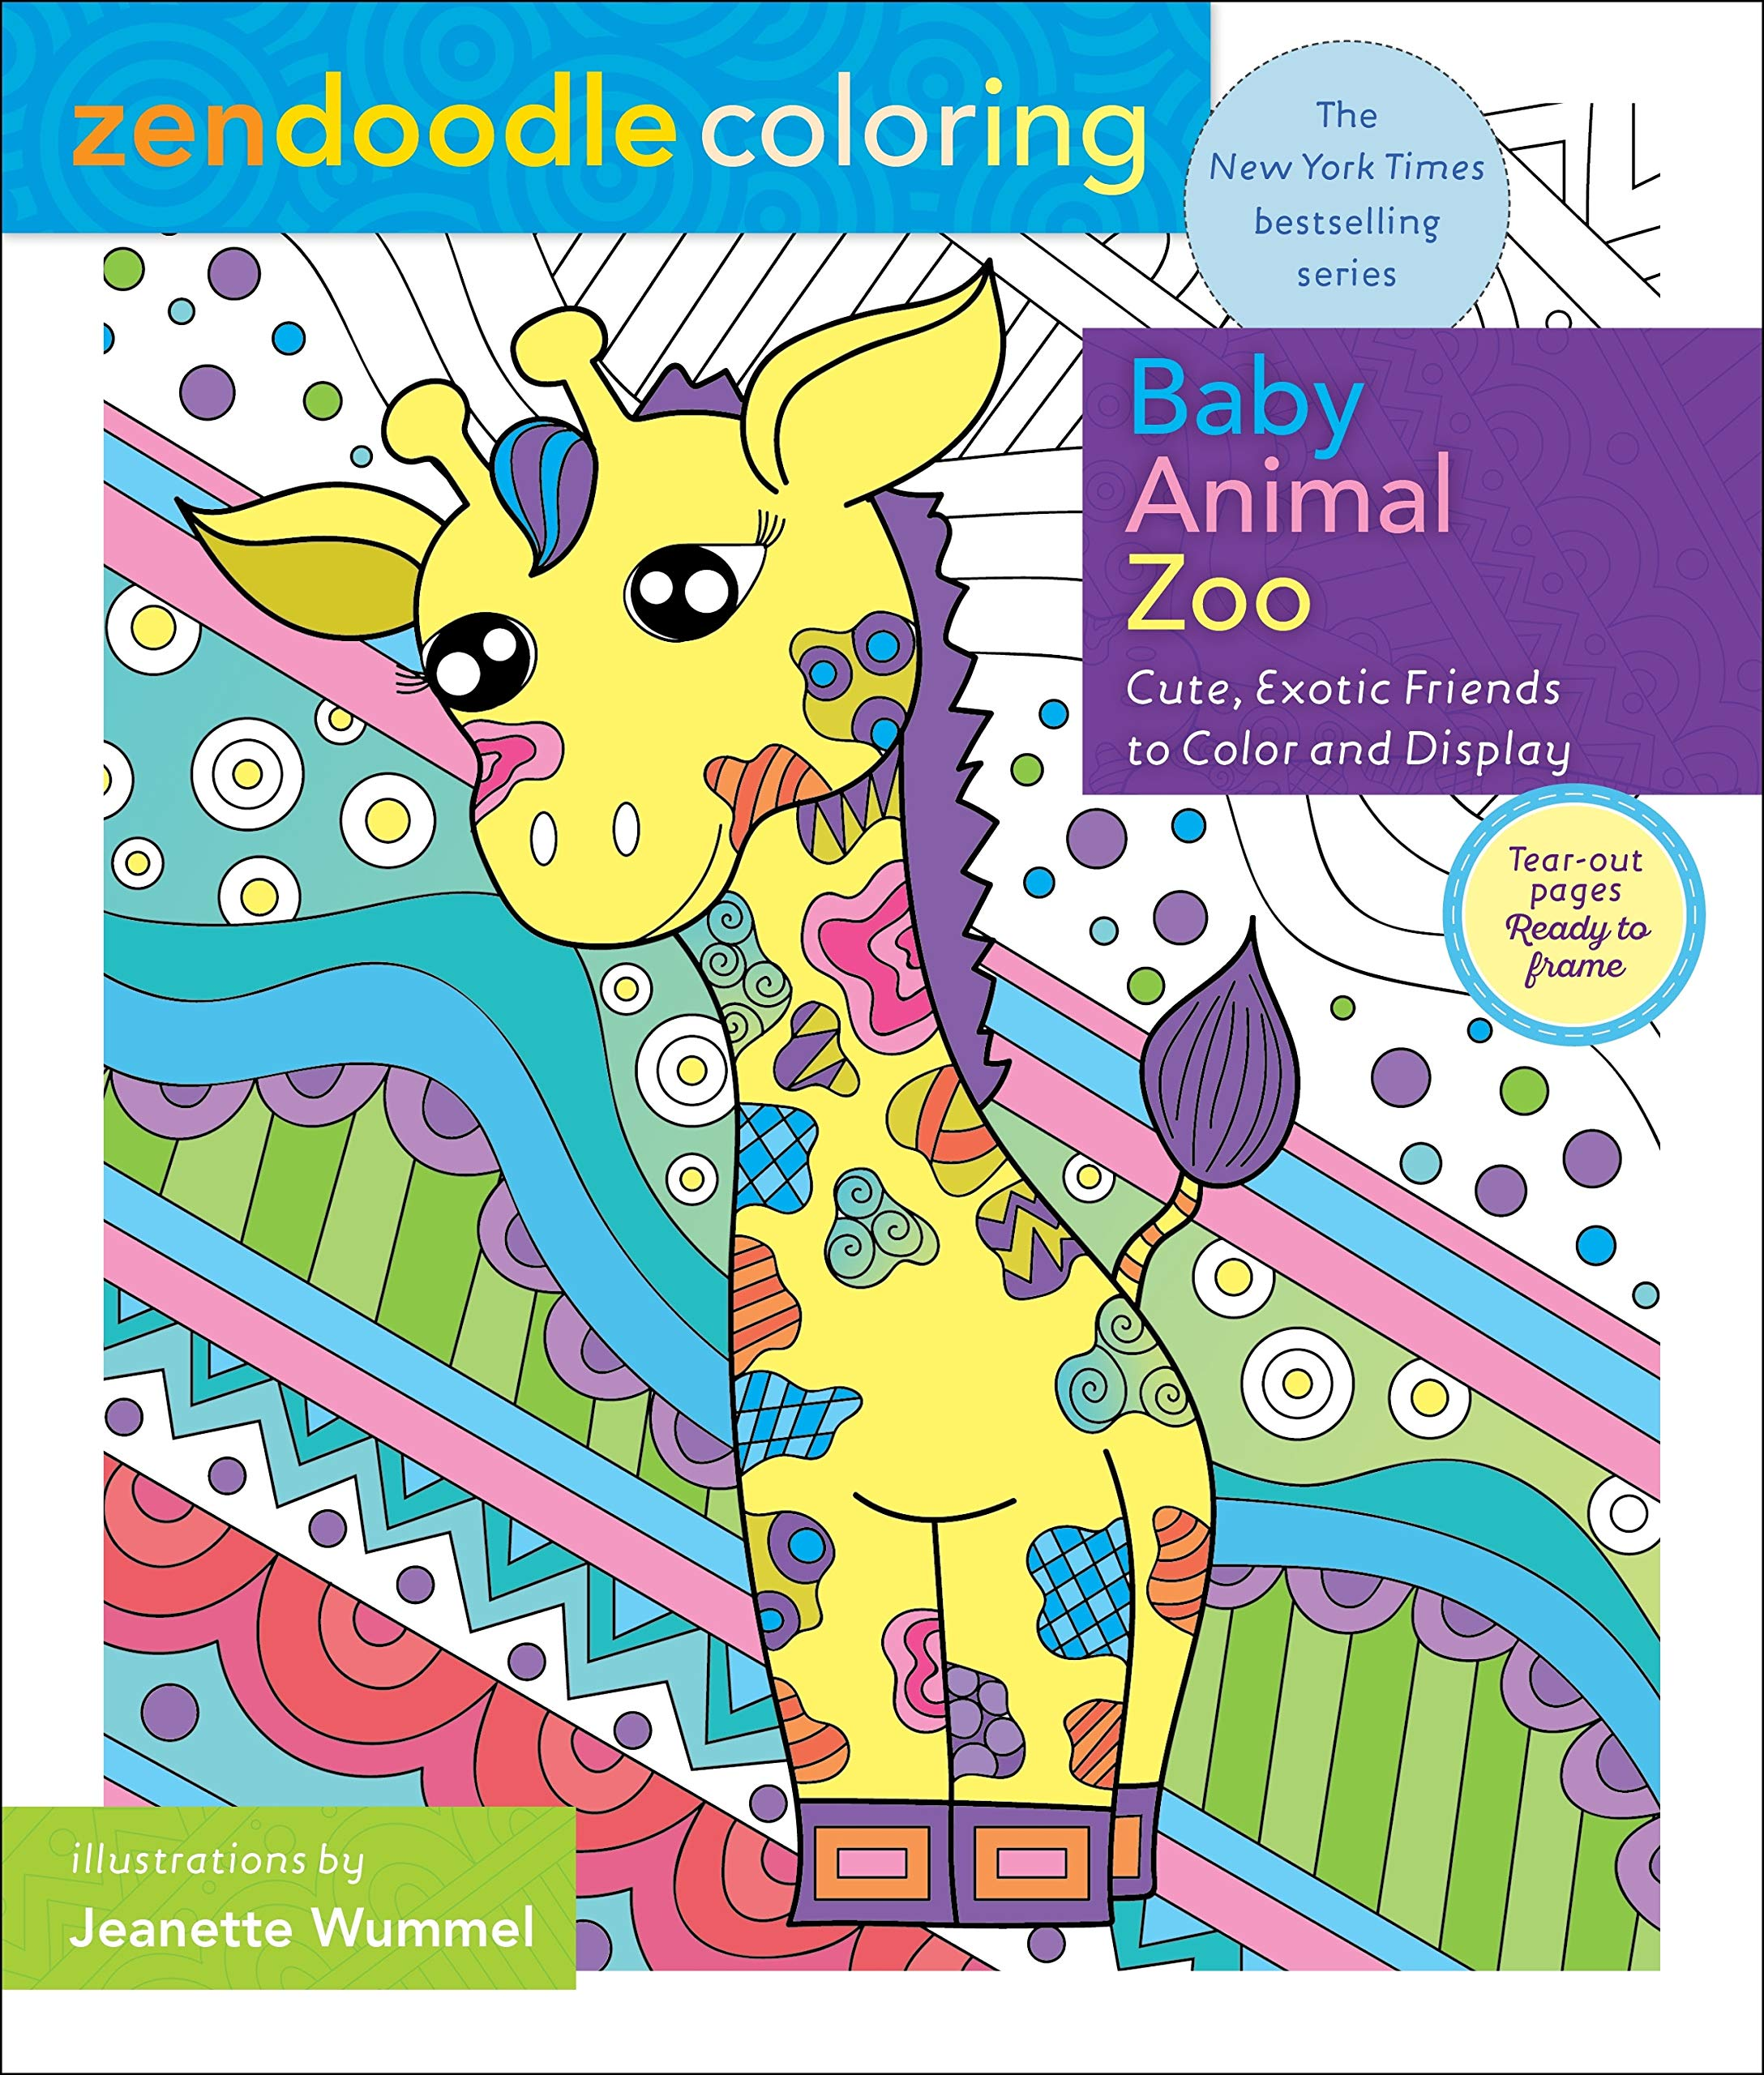 Amazon Com Zendoodle Coloring Baby Zoo Animals Cute Exotic Friends To Color And Display 9781250202413 Wummel Jeanette Books